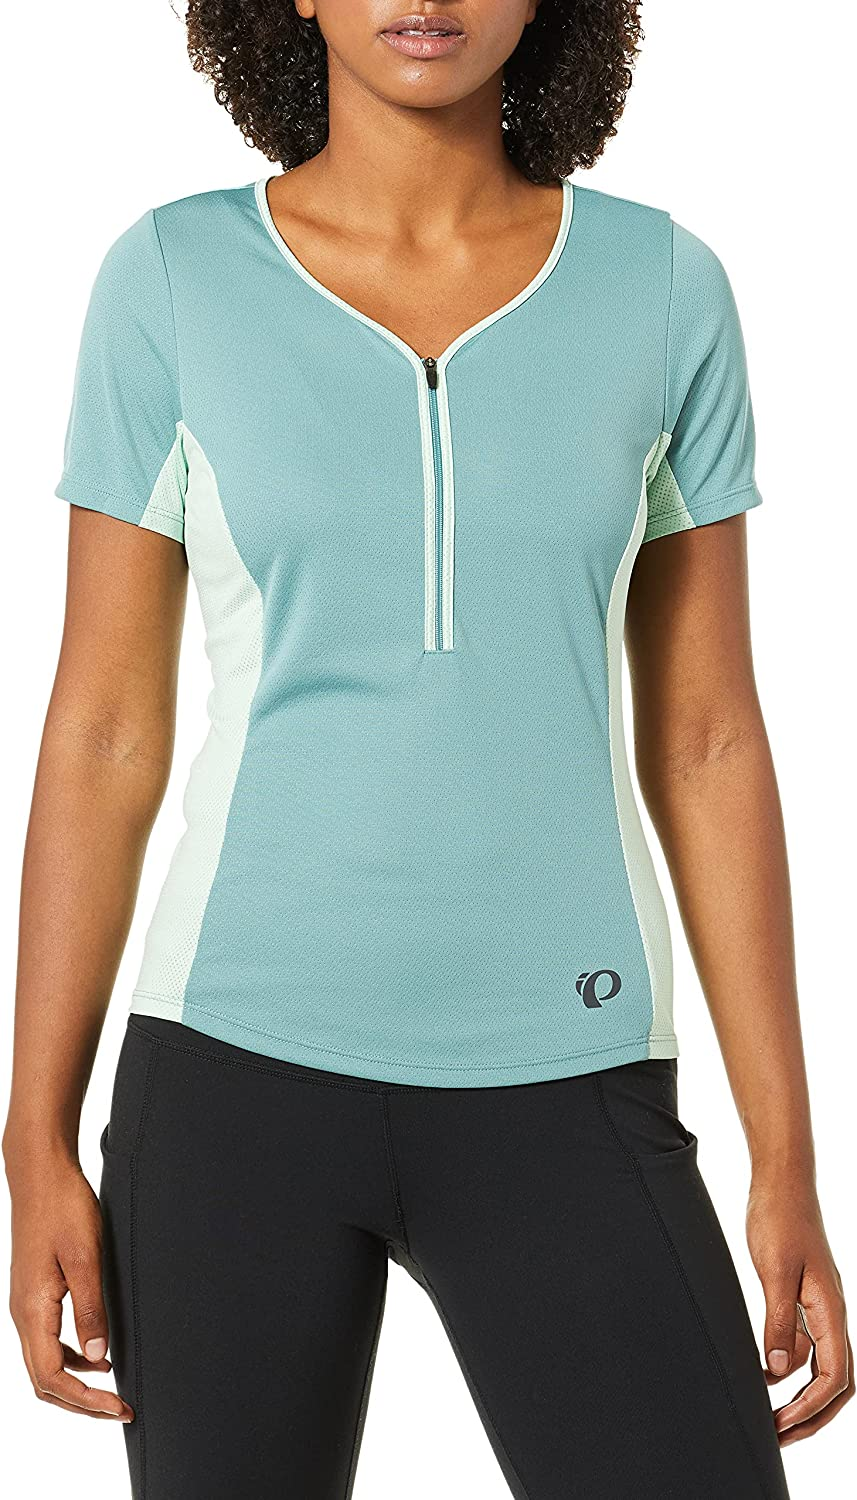 PEARL IZUMI Women's Jersey Max 60% OFF Low price Canyon